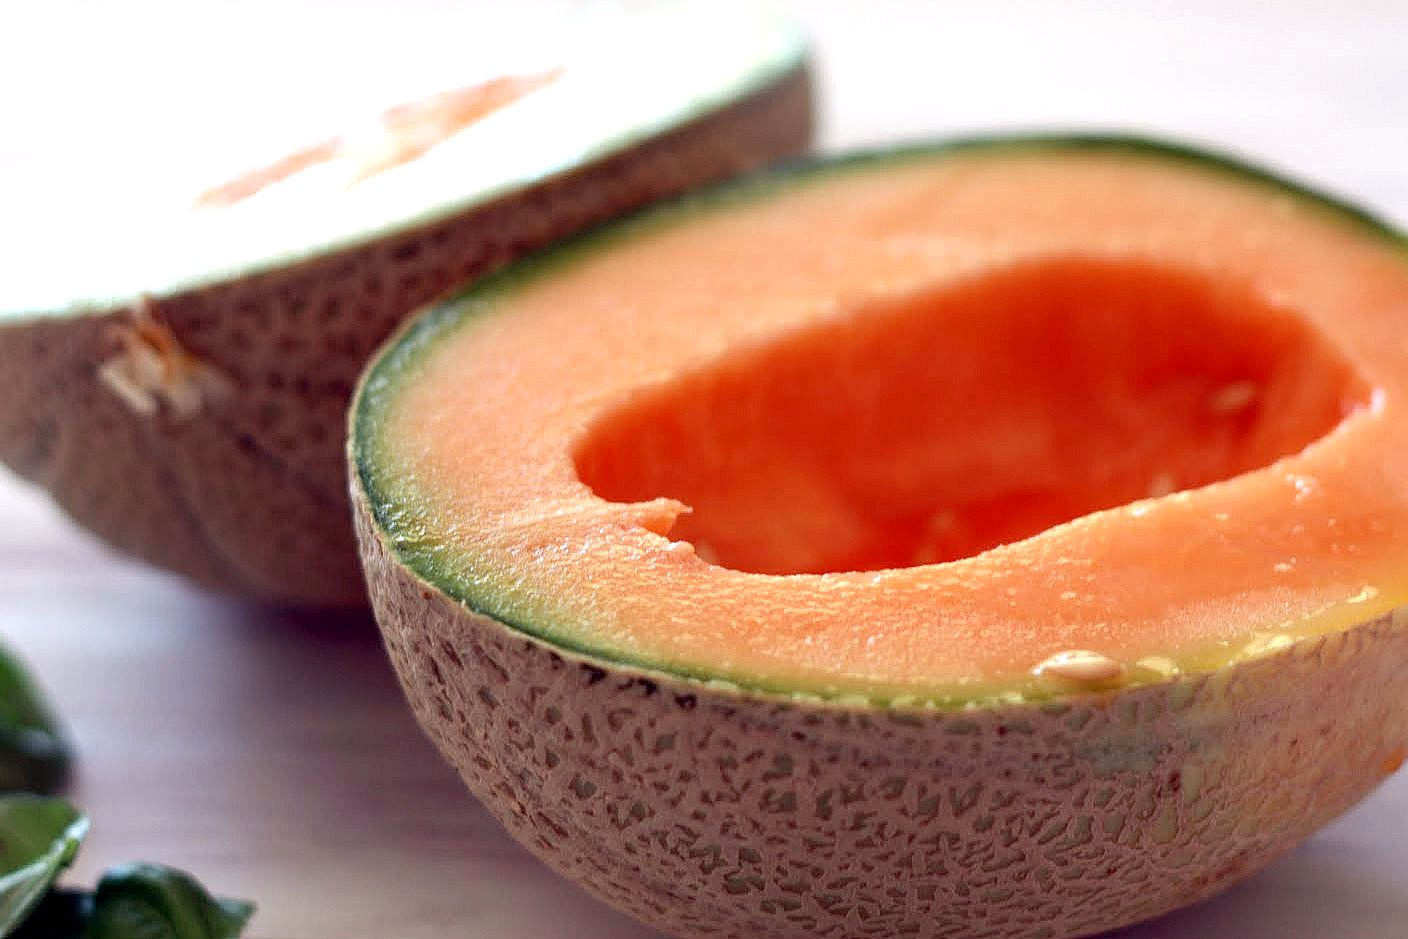 Cantaloupe is halved and seeds scooped out to make melon and prosciutto salad.